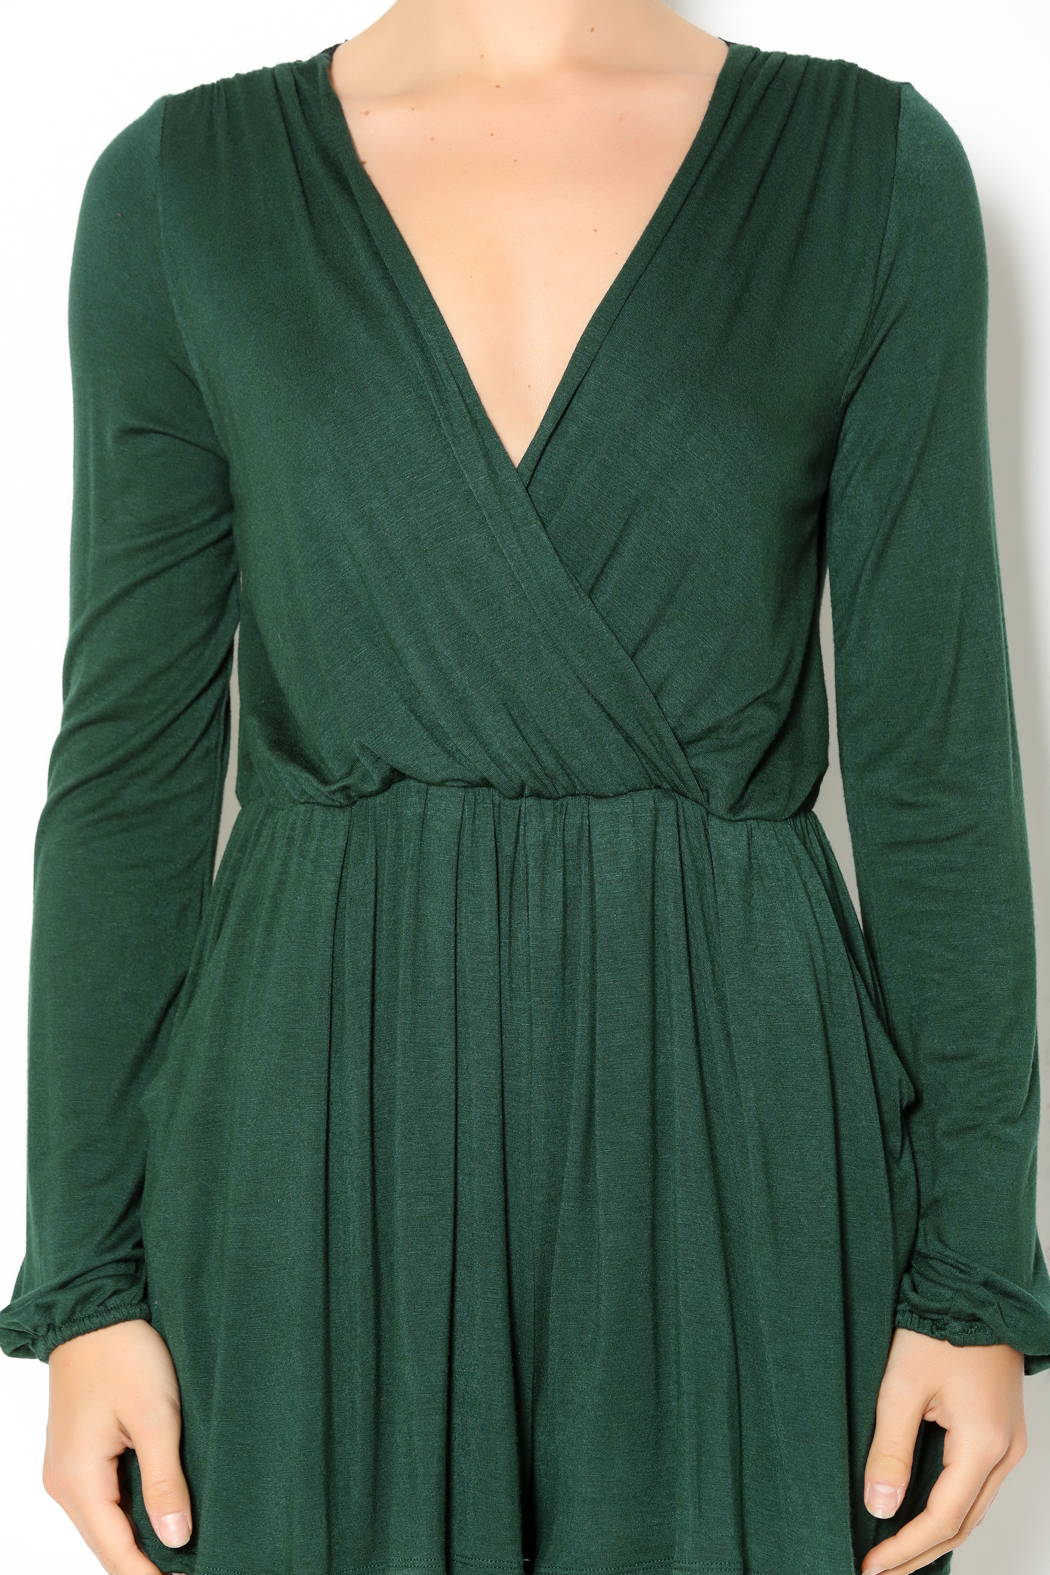 8f5f0b6576b5 Double Zero Hunter Green Romper from Naples by Petunias of Naples —  Shoptiques